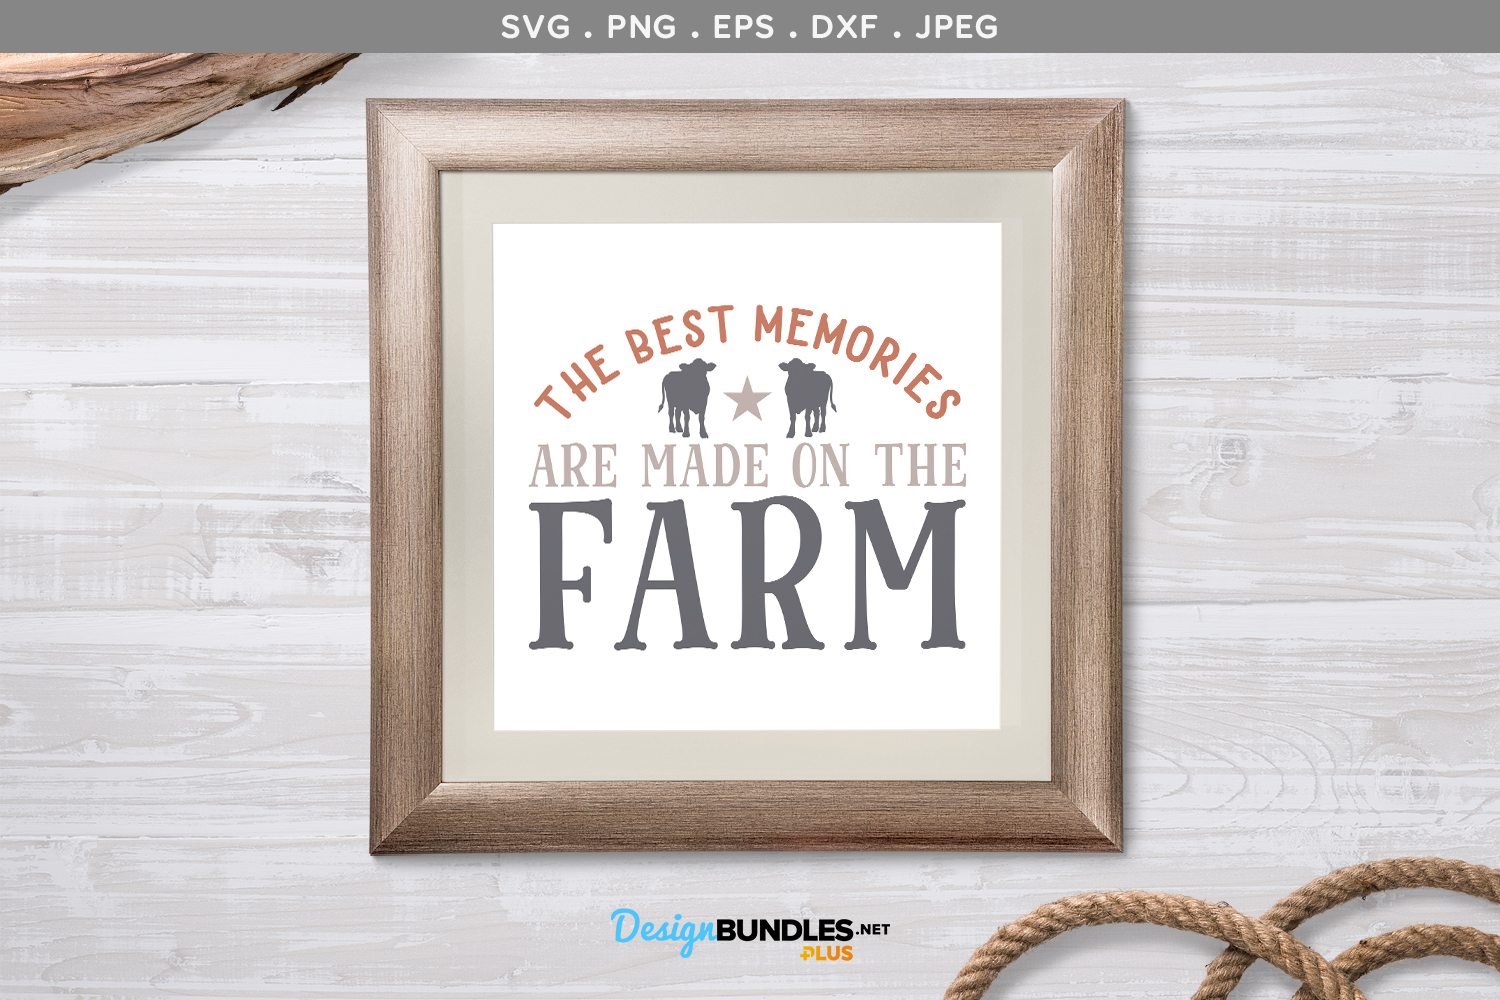 The Best Memories are Made on the Farm - svg & printable example image 1